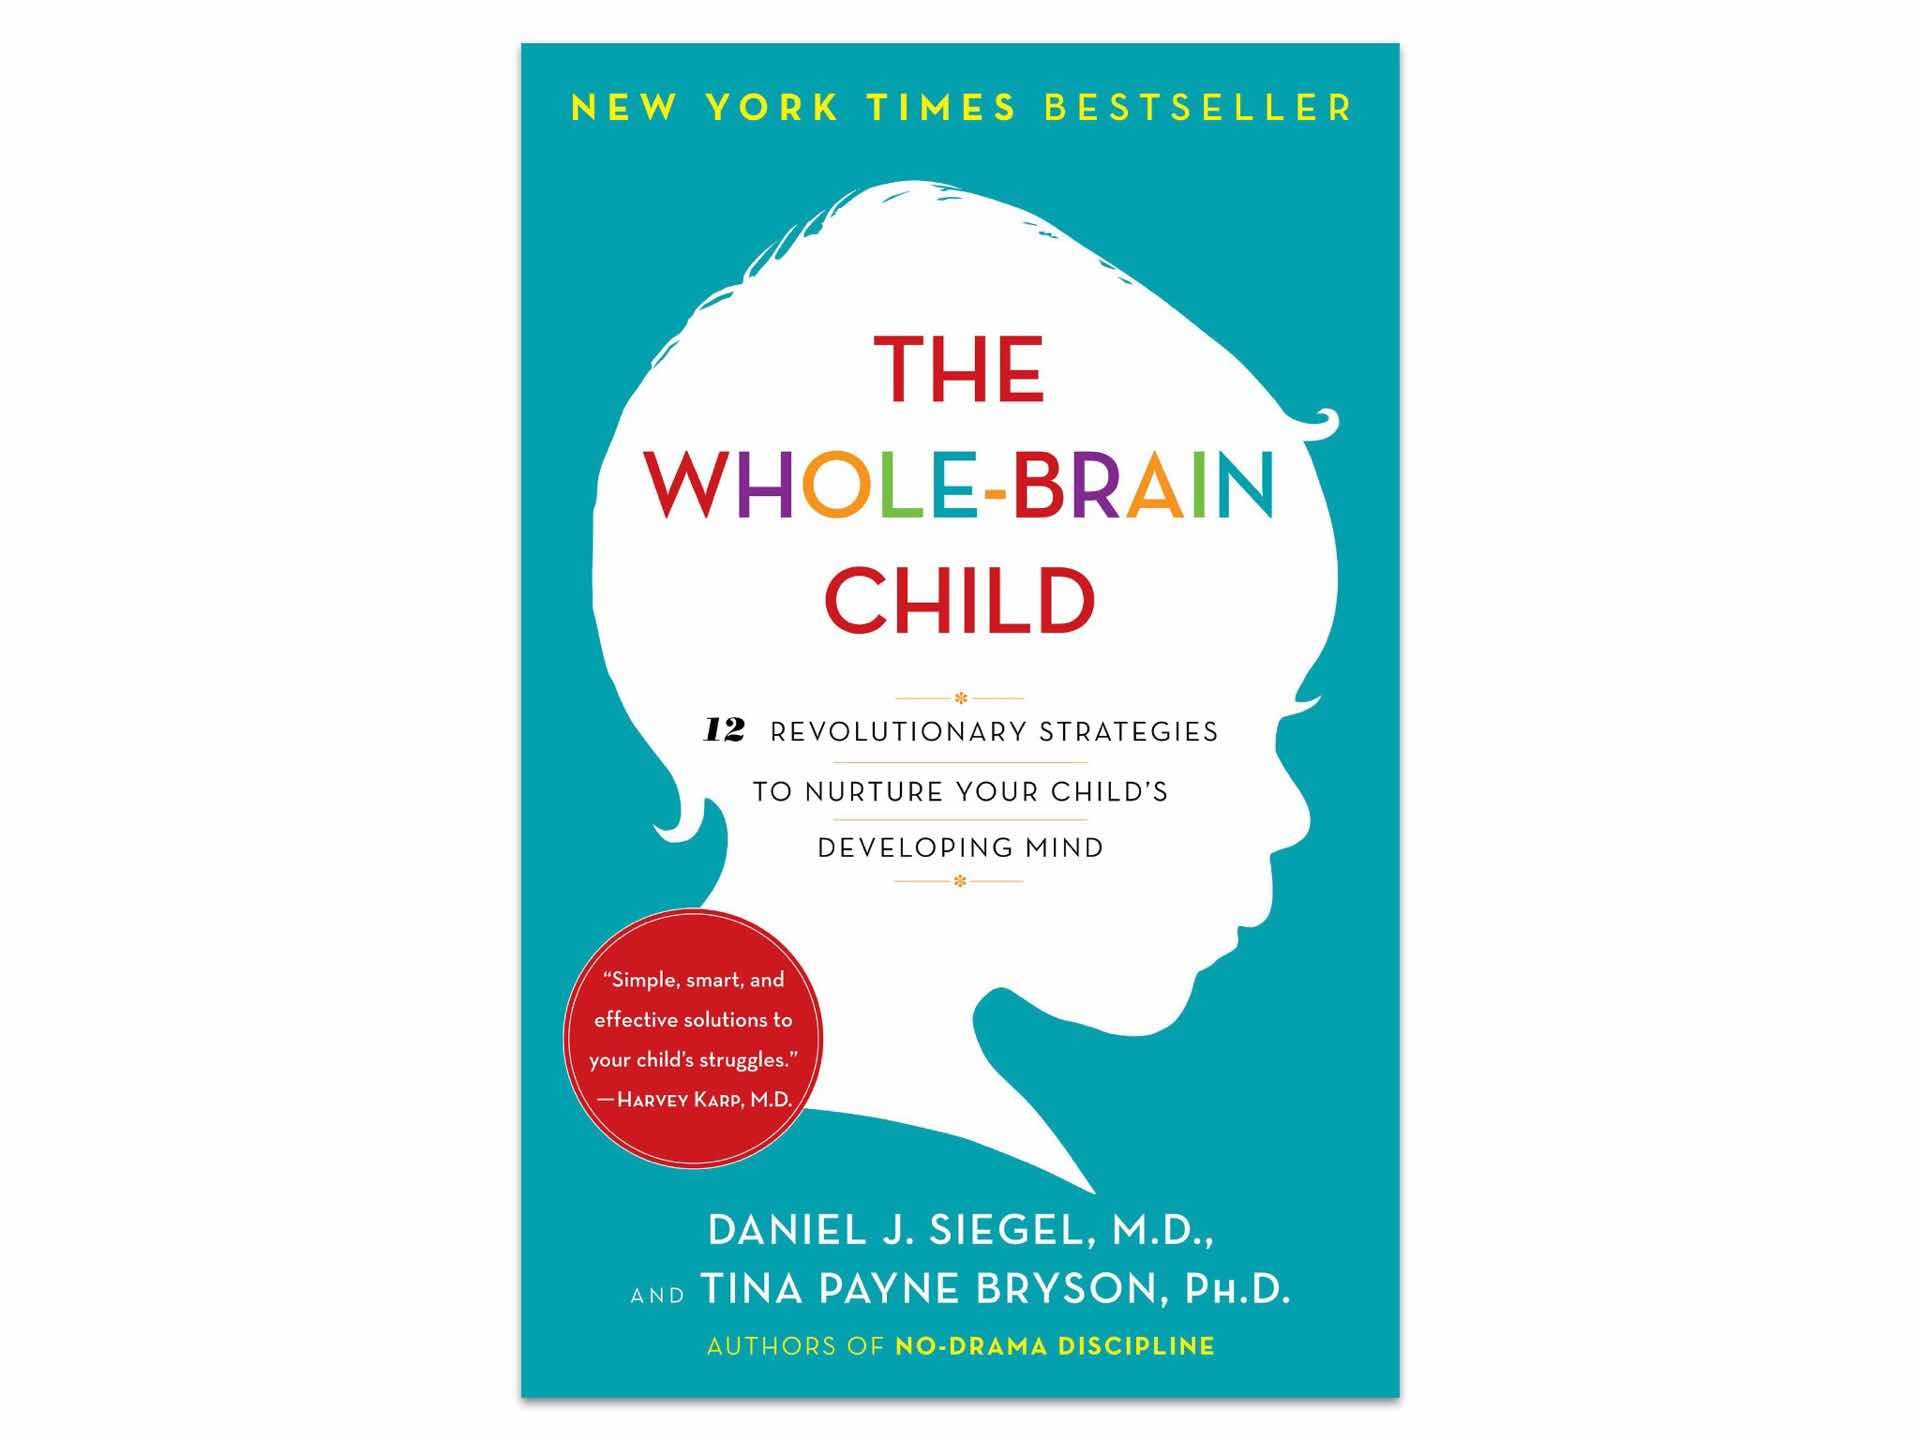 The Whole-Brain Child by Daniel J. Siegel and Tina Payne Bryson.